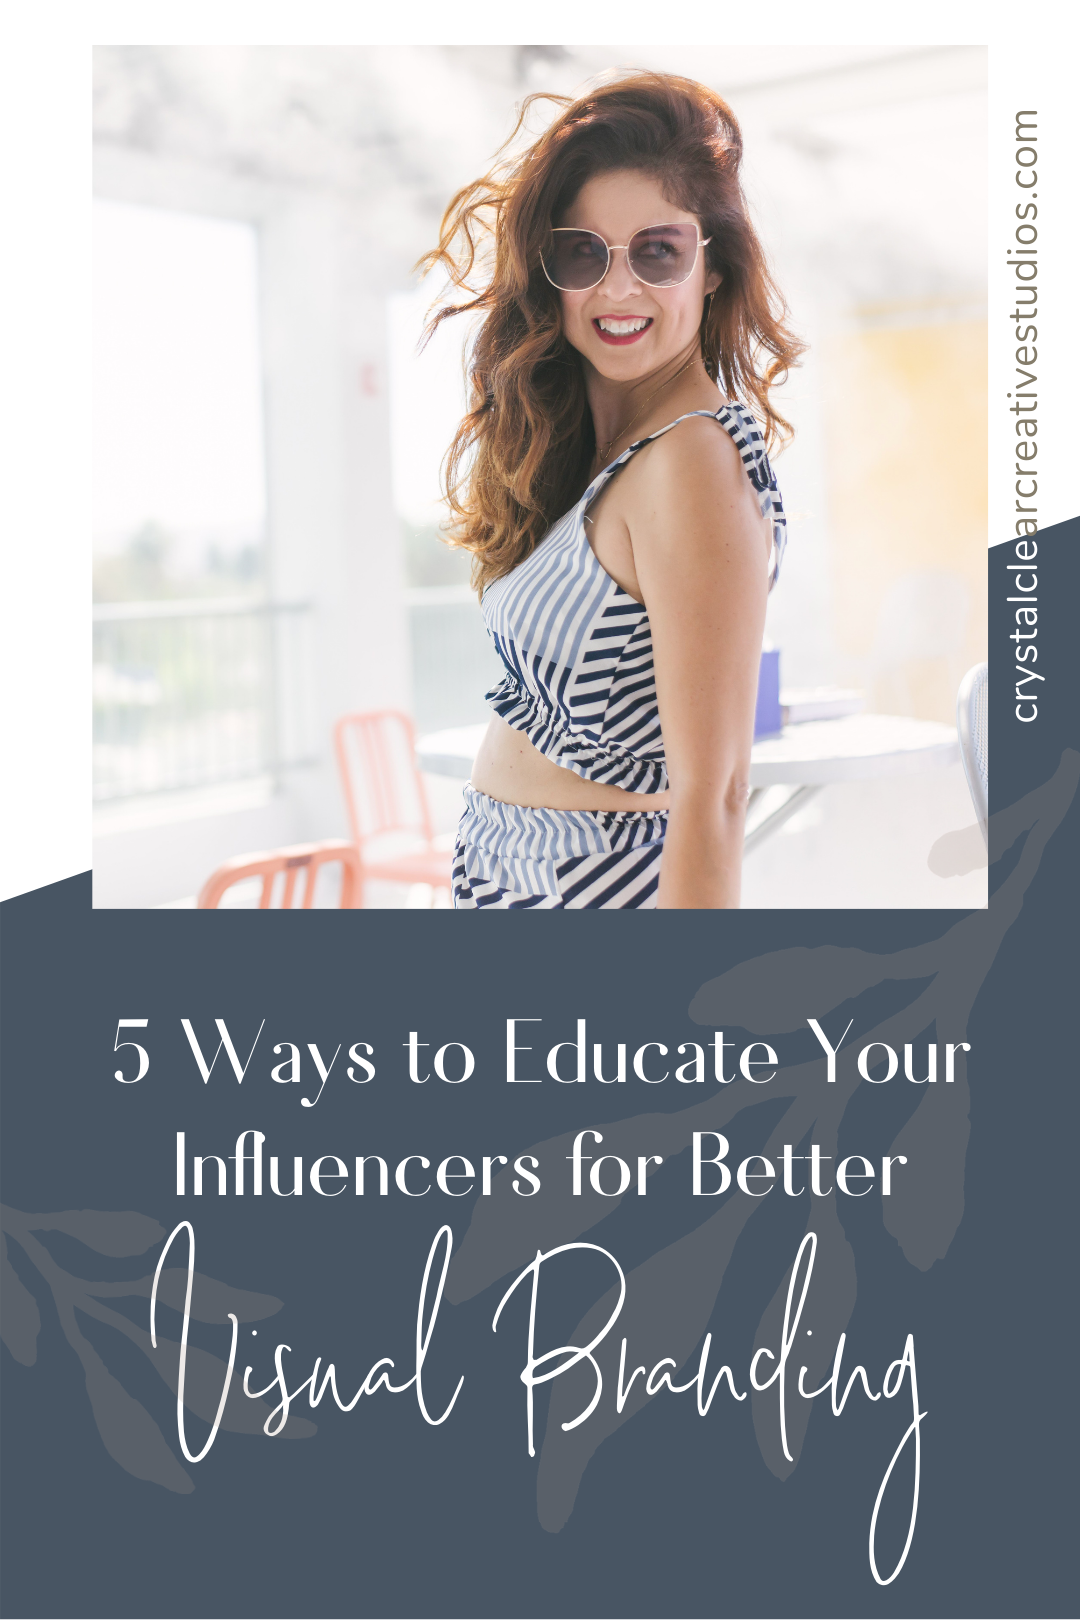 5-ways-to-educate-your-influencers-for-better-visual-branding